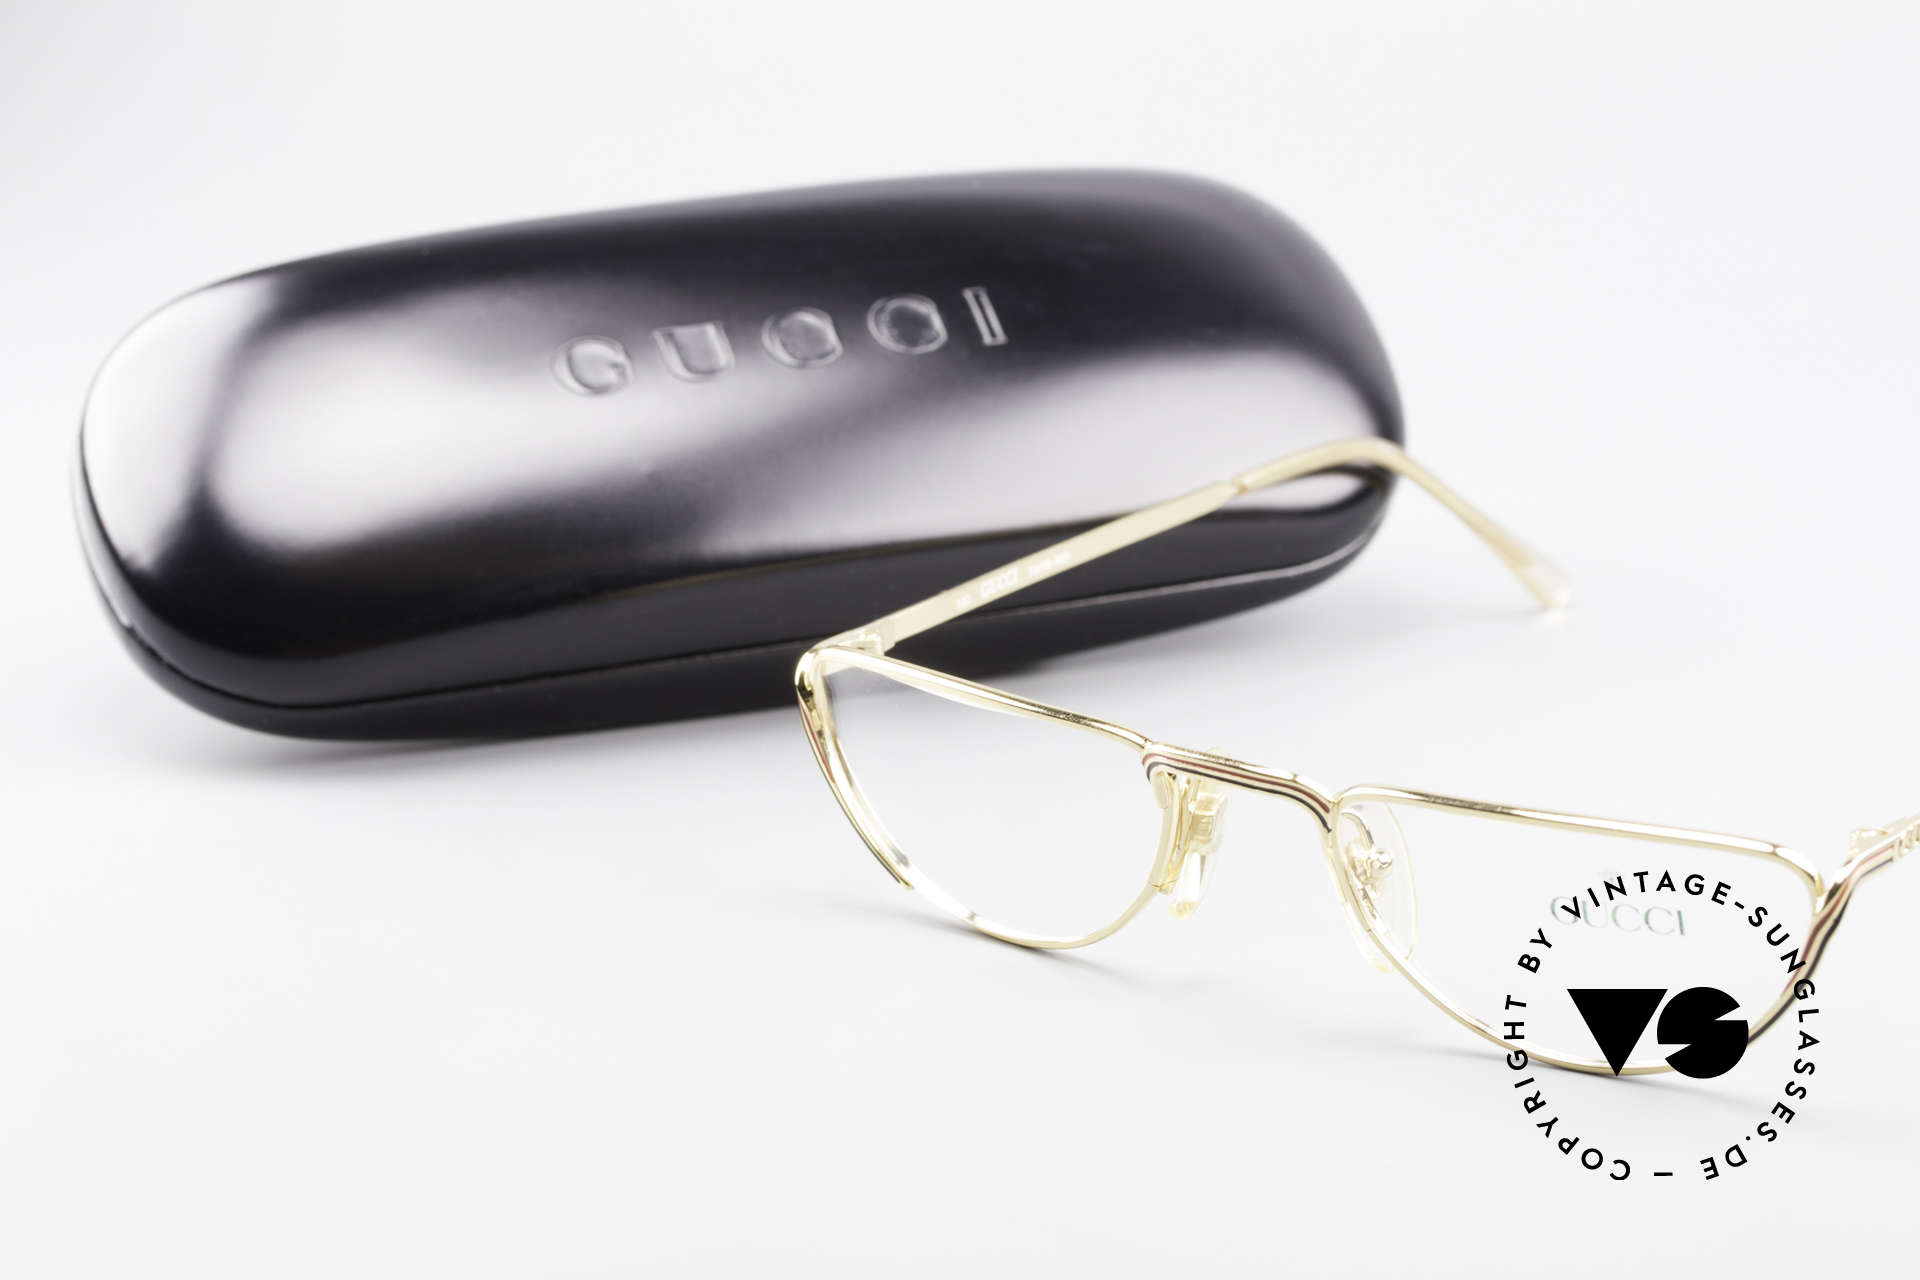 Gucci 2203 80's Vintage Reading Glasses, 125mm width: SMALL size (rather a ladies model), Made for Women